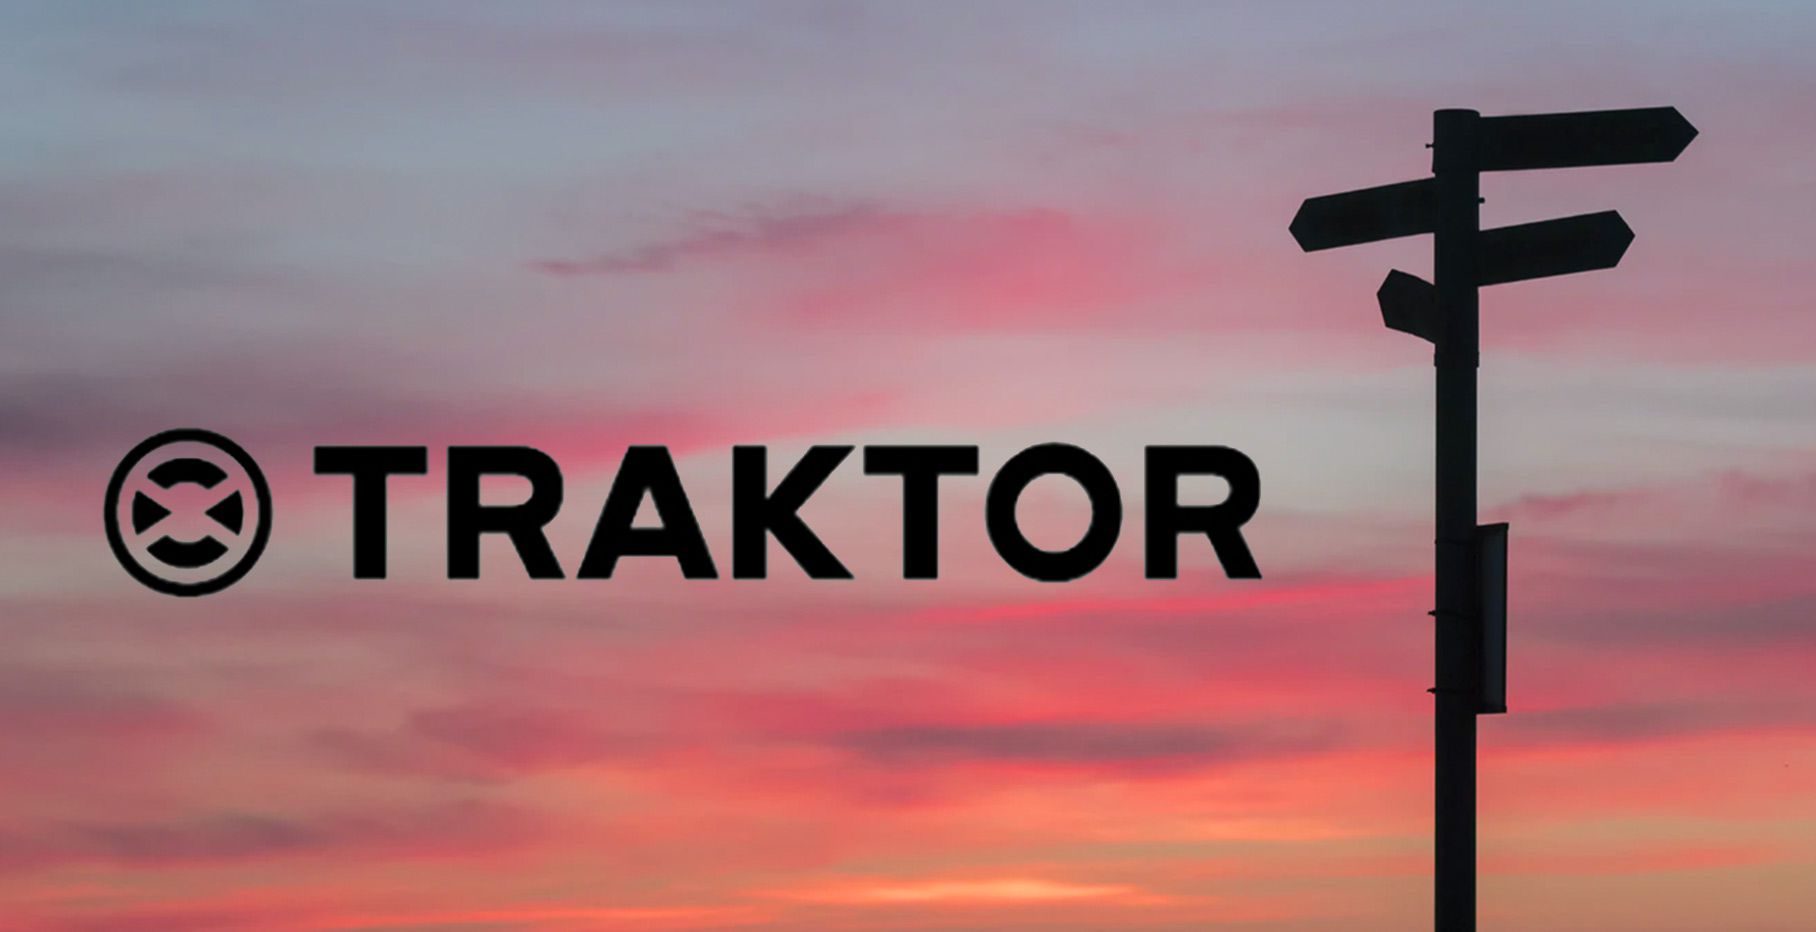 Most of Native Instruments' shares have sold. What could it mean for Traktor?